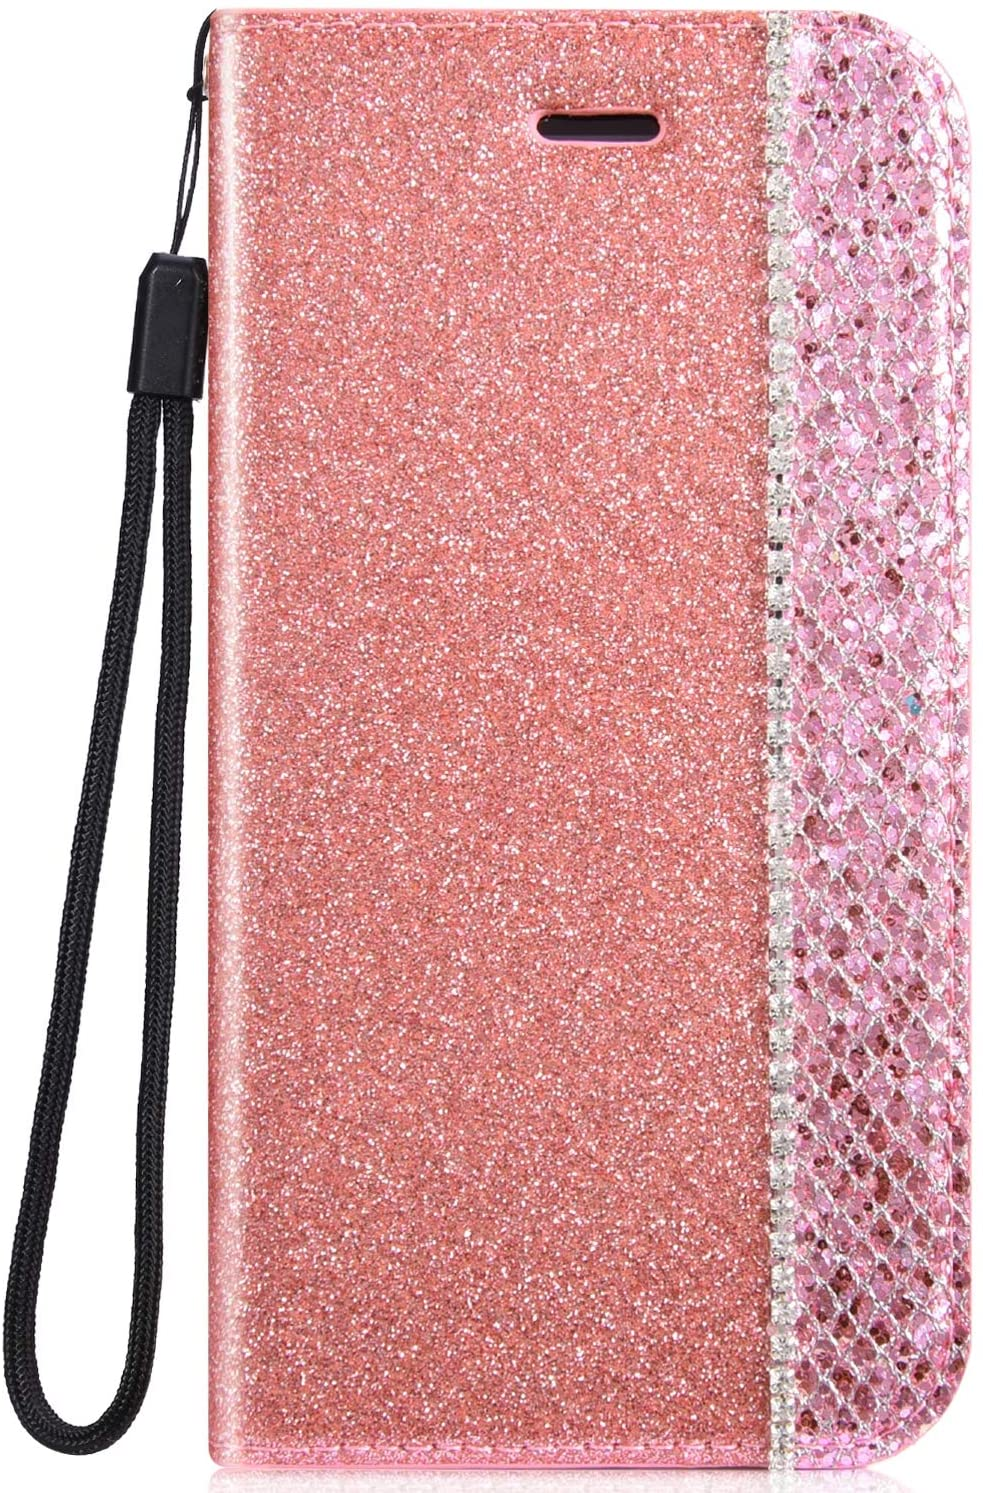 IKASEFU Shiny Rhinestone Diamond Sparkle Bling Glitter Luxury Wallet with Card Holder Flash chip Pu Leather Magnetic Flip Case Protective Cover Case Compatible with iPhone 7 Plus/8 Plus,Pink